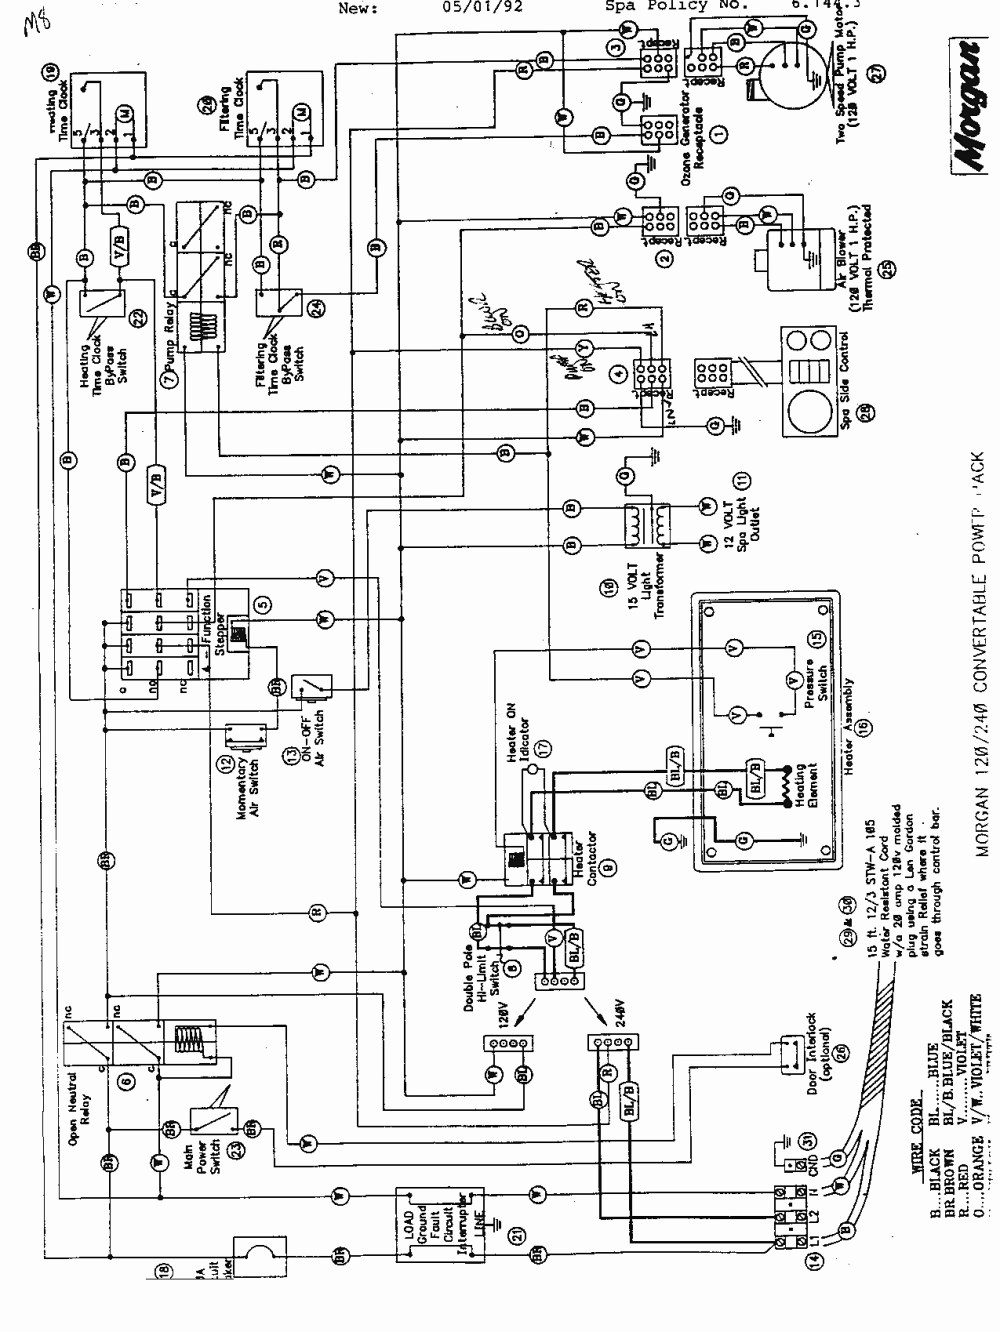 medium resolution of hot tub wiring schematic vita spa parts diagram for 220v hot tub wiring diagram to